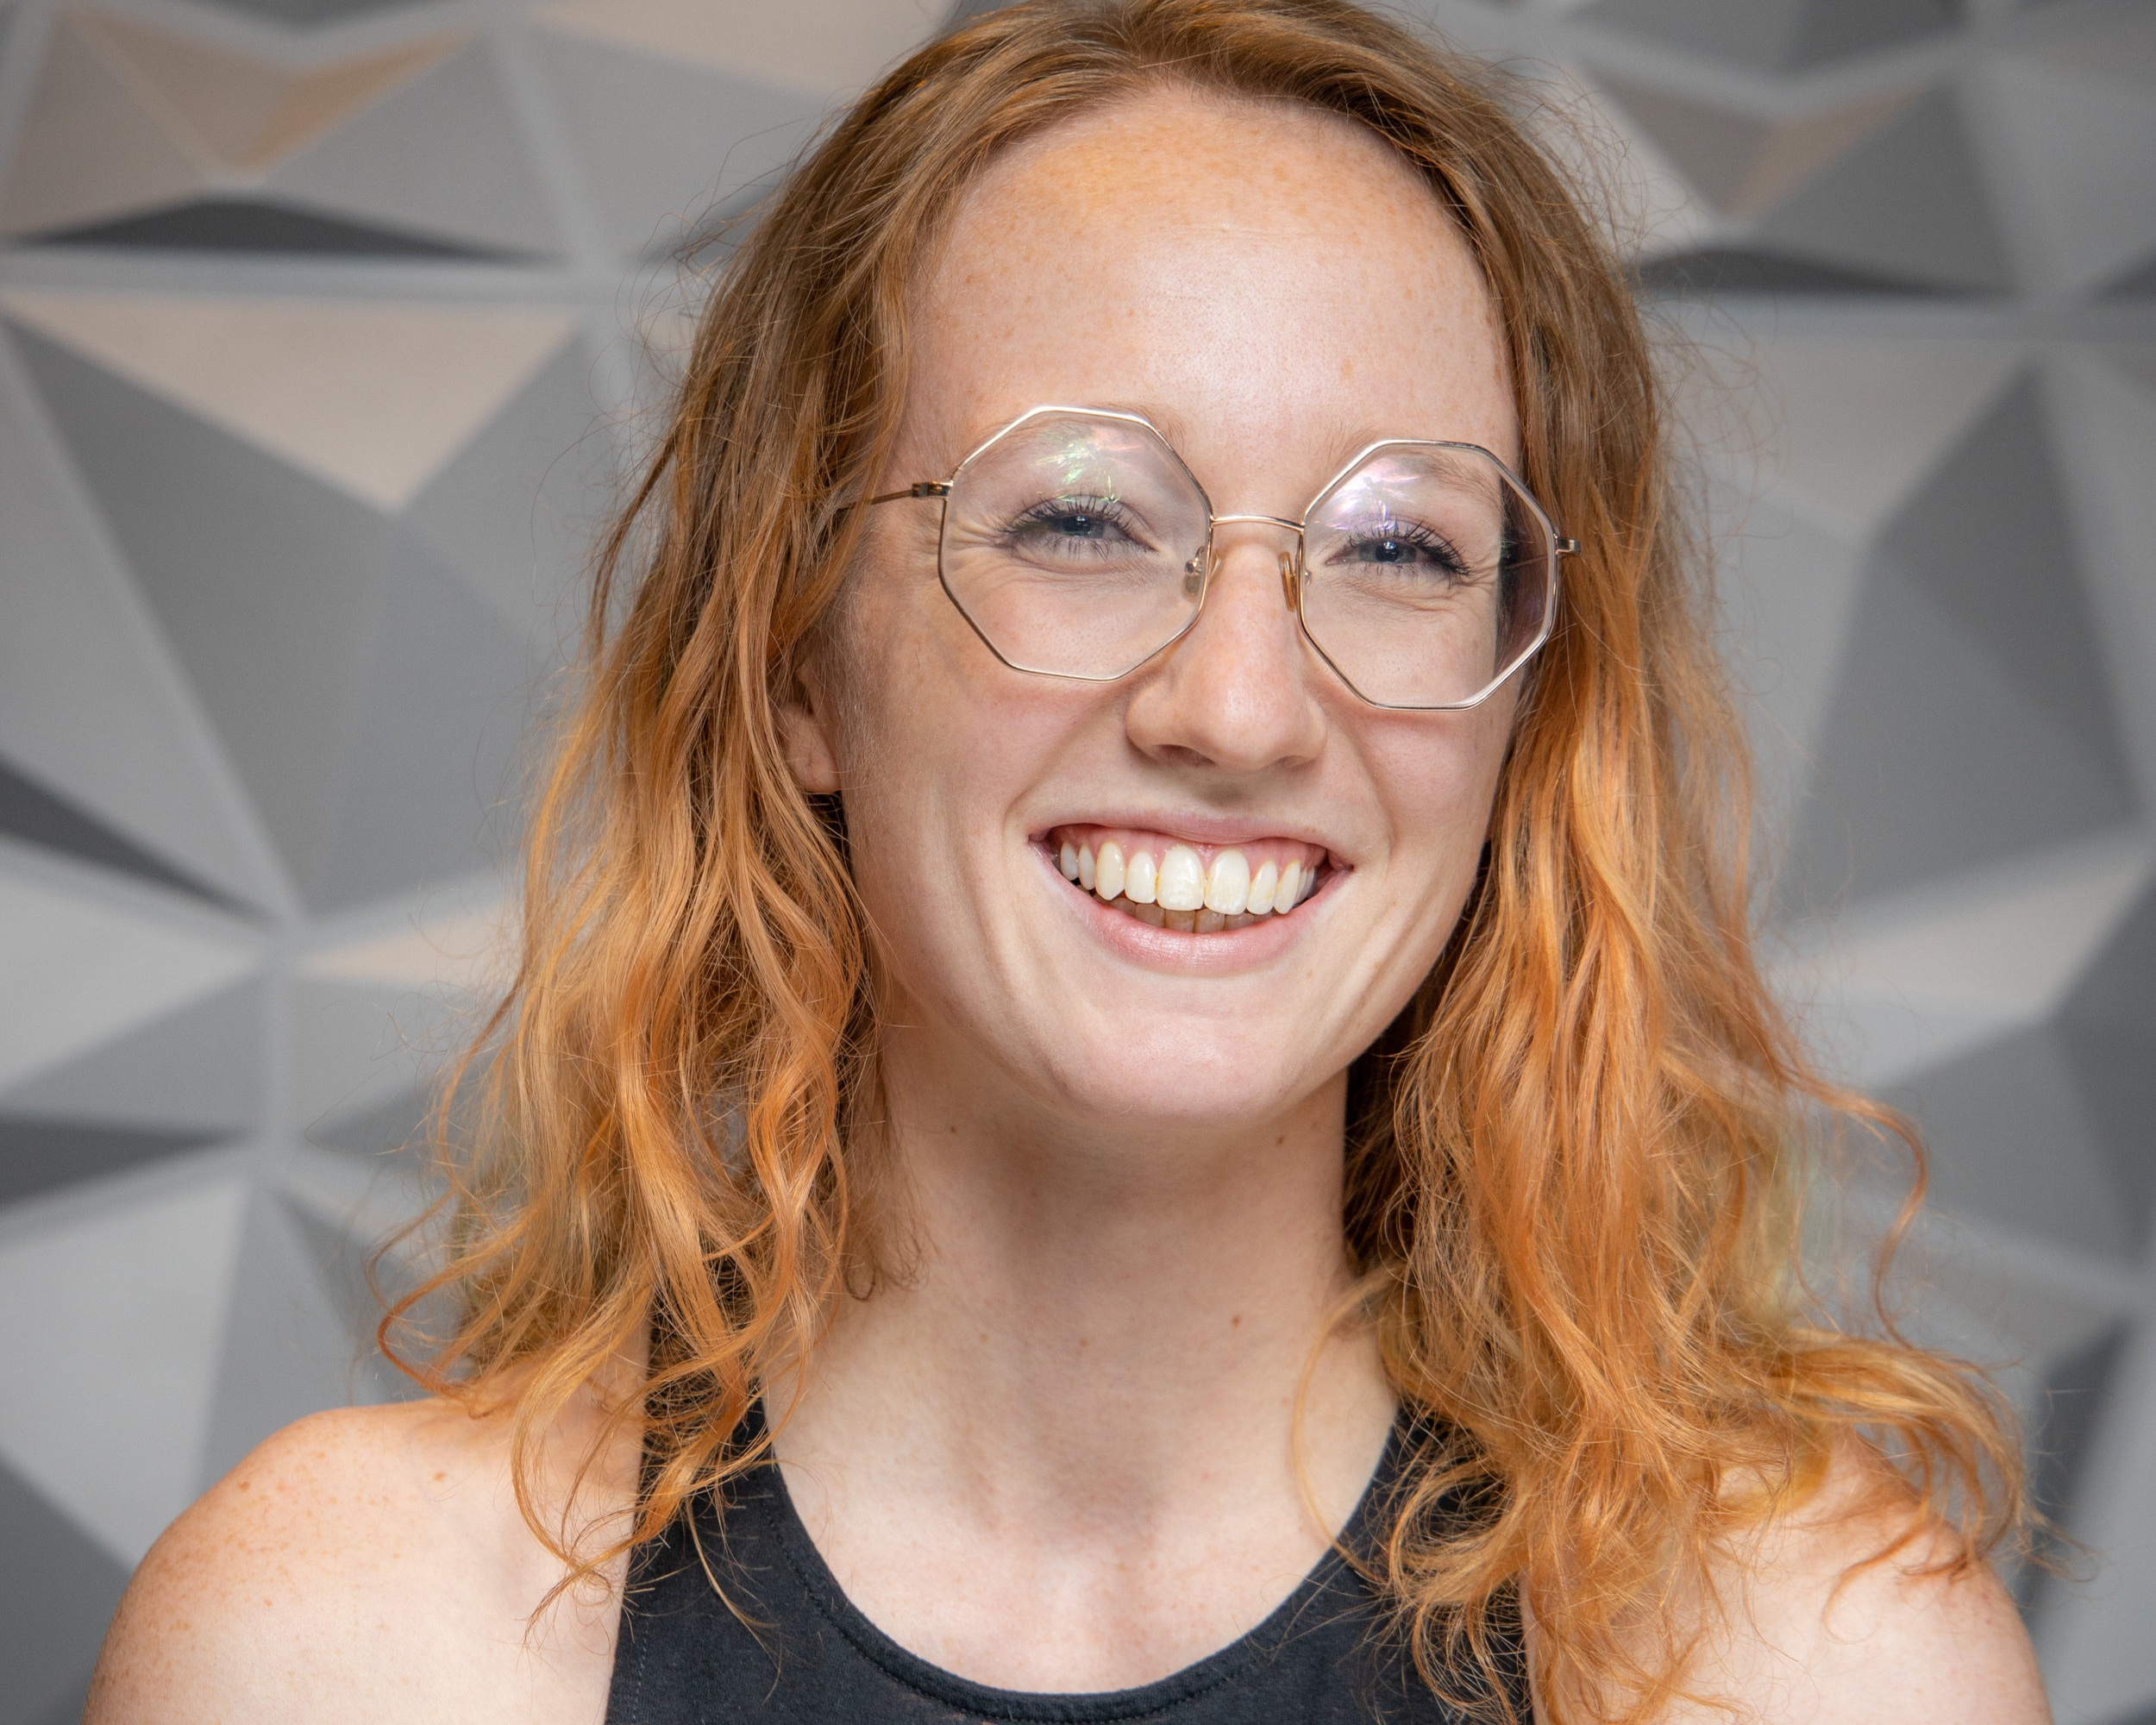 Ally beacom - Ally brings joy and whimsy everywhere she goes, and is incredibly well rounded, you'll love being trained by her for pilates, barre, high intensity interval circuit, or strength training. Join her Tuesday and Thursday mornings.